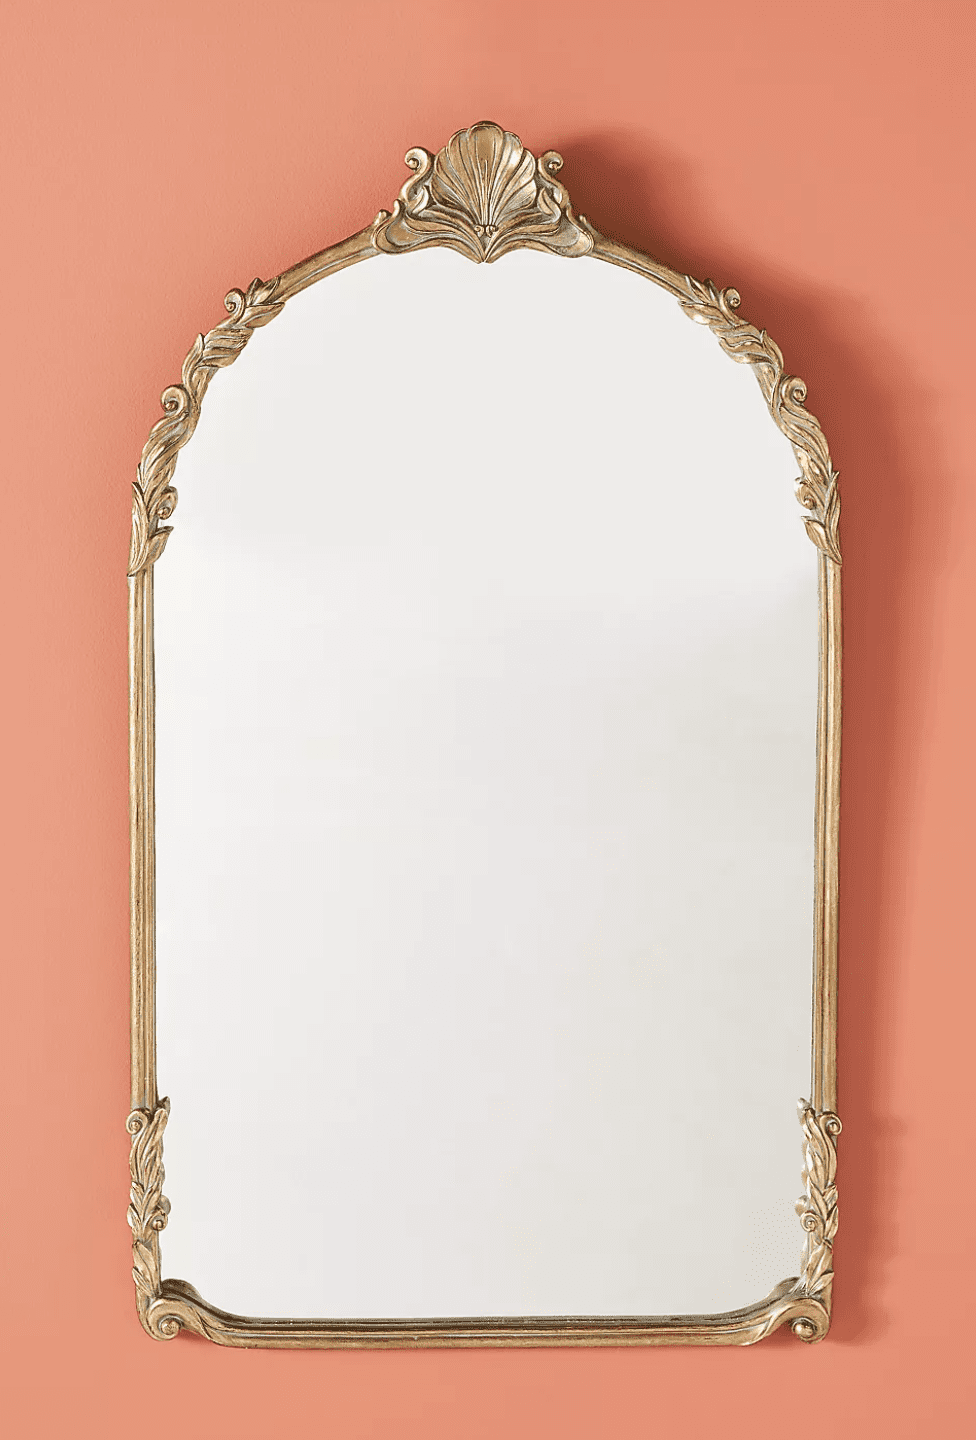 An ornate mirror, currently for sale at Anthropologie